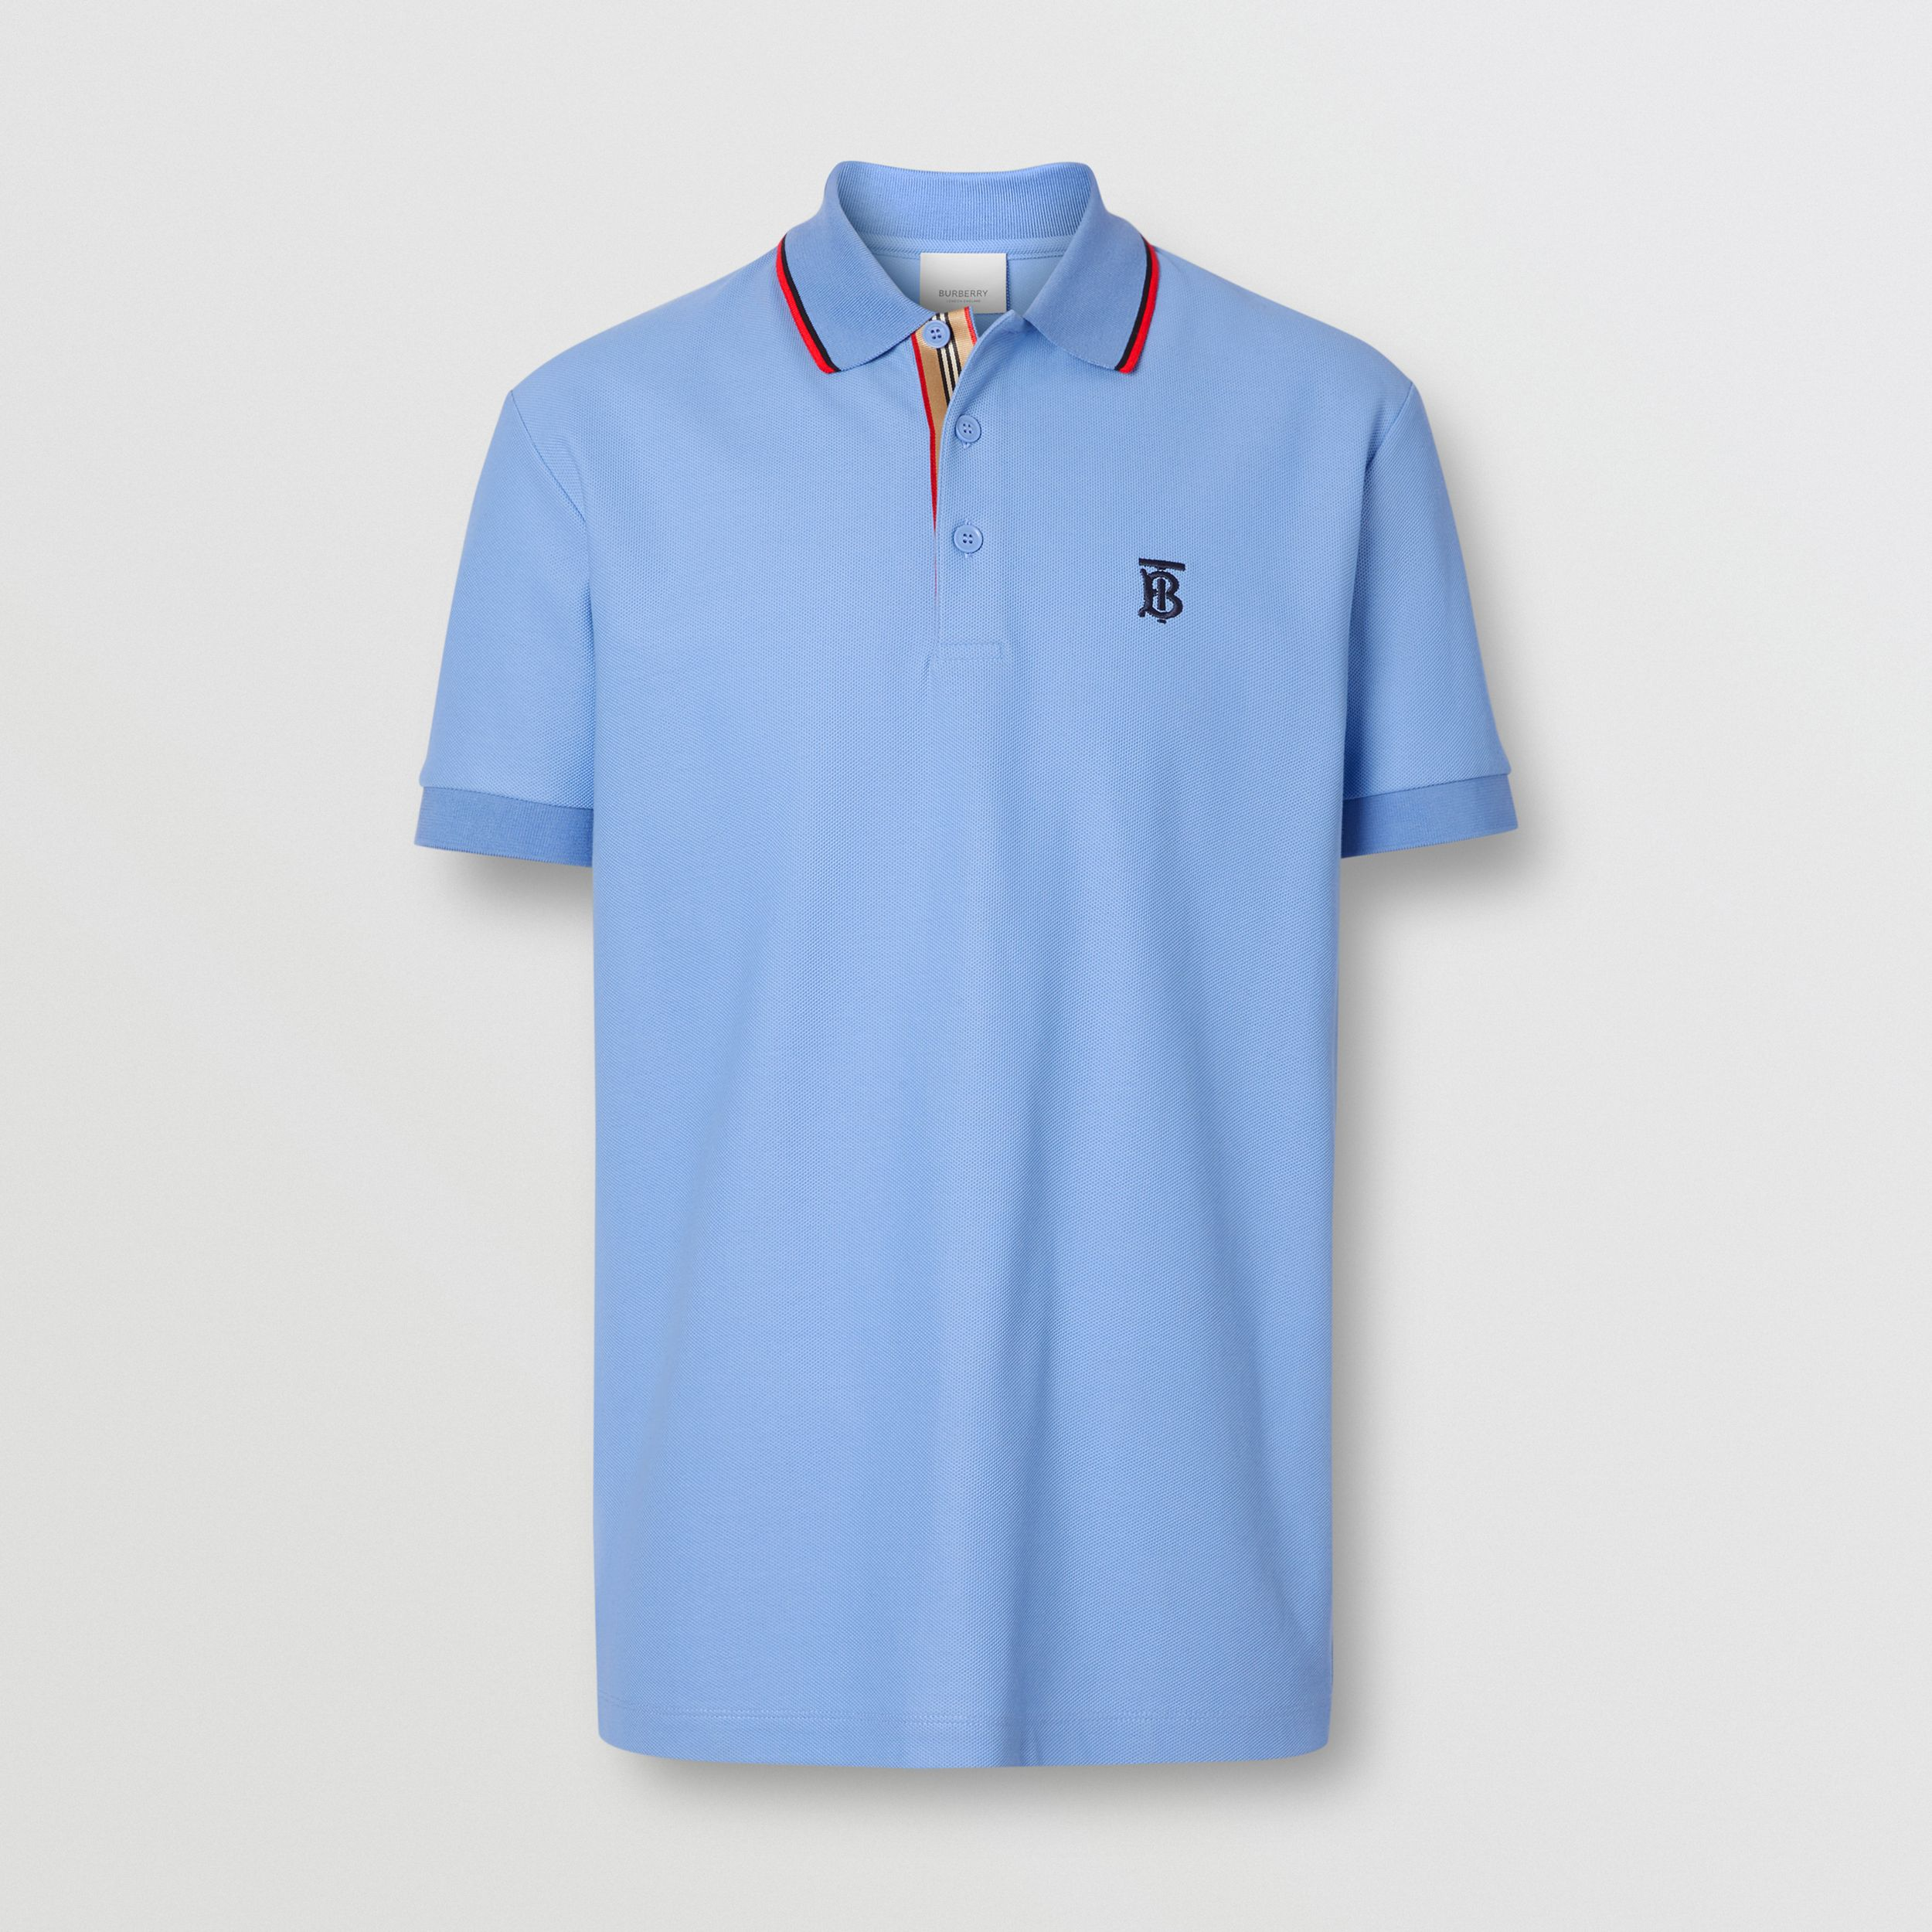 Monogram Motif Cotton Piqué Polo Shirt in Opal Blue - Men | Burberry Australia - 4